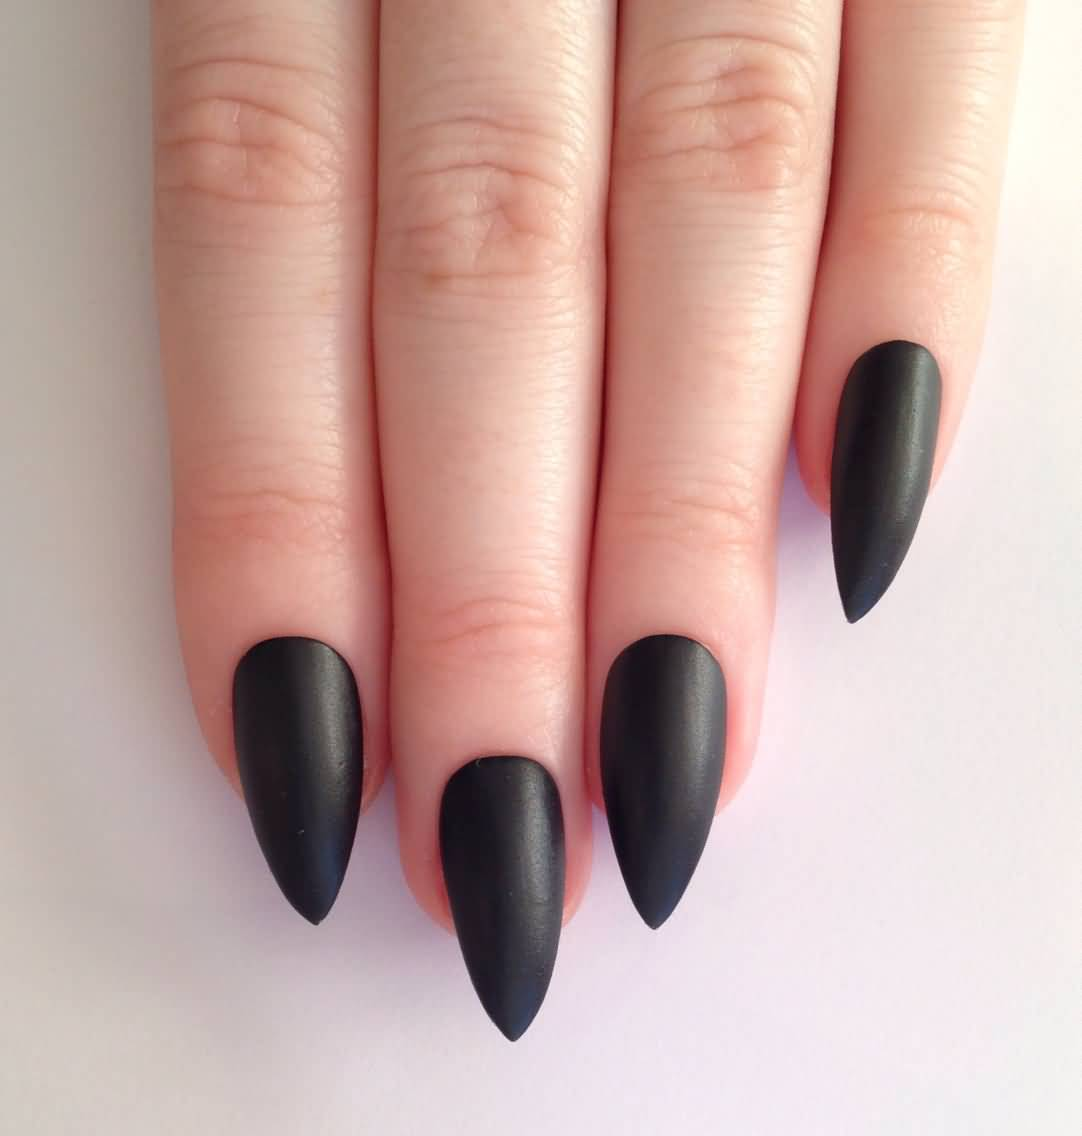 Sensational Stiletto Nails With Dark Black Nail